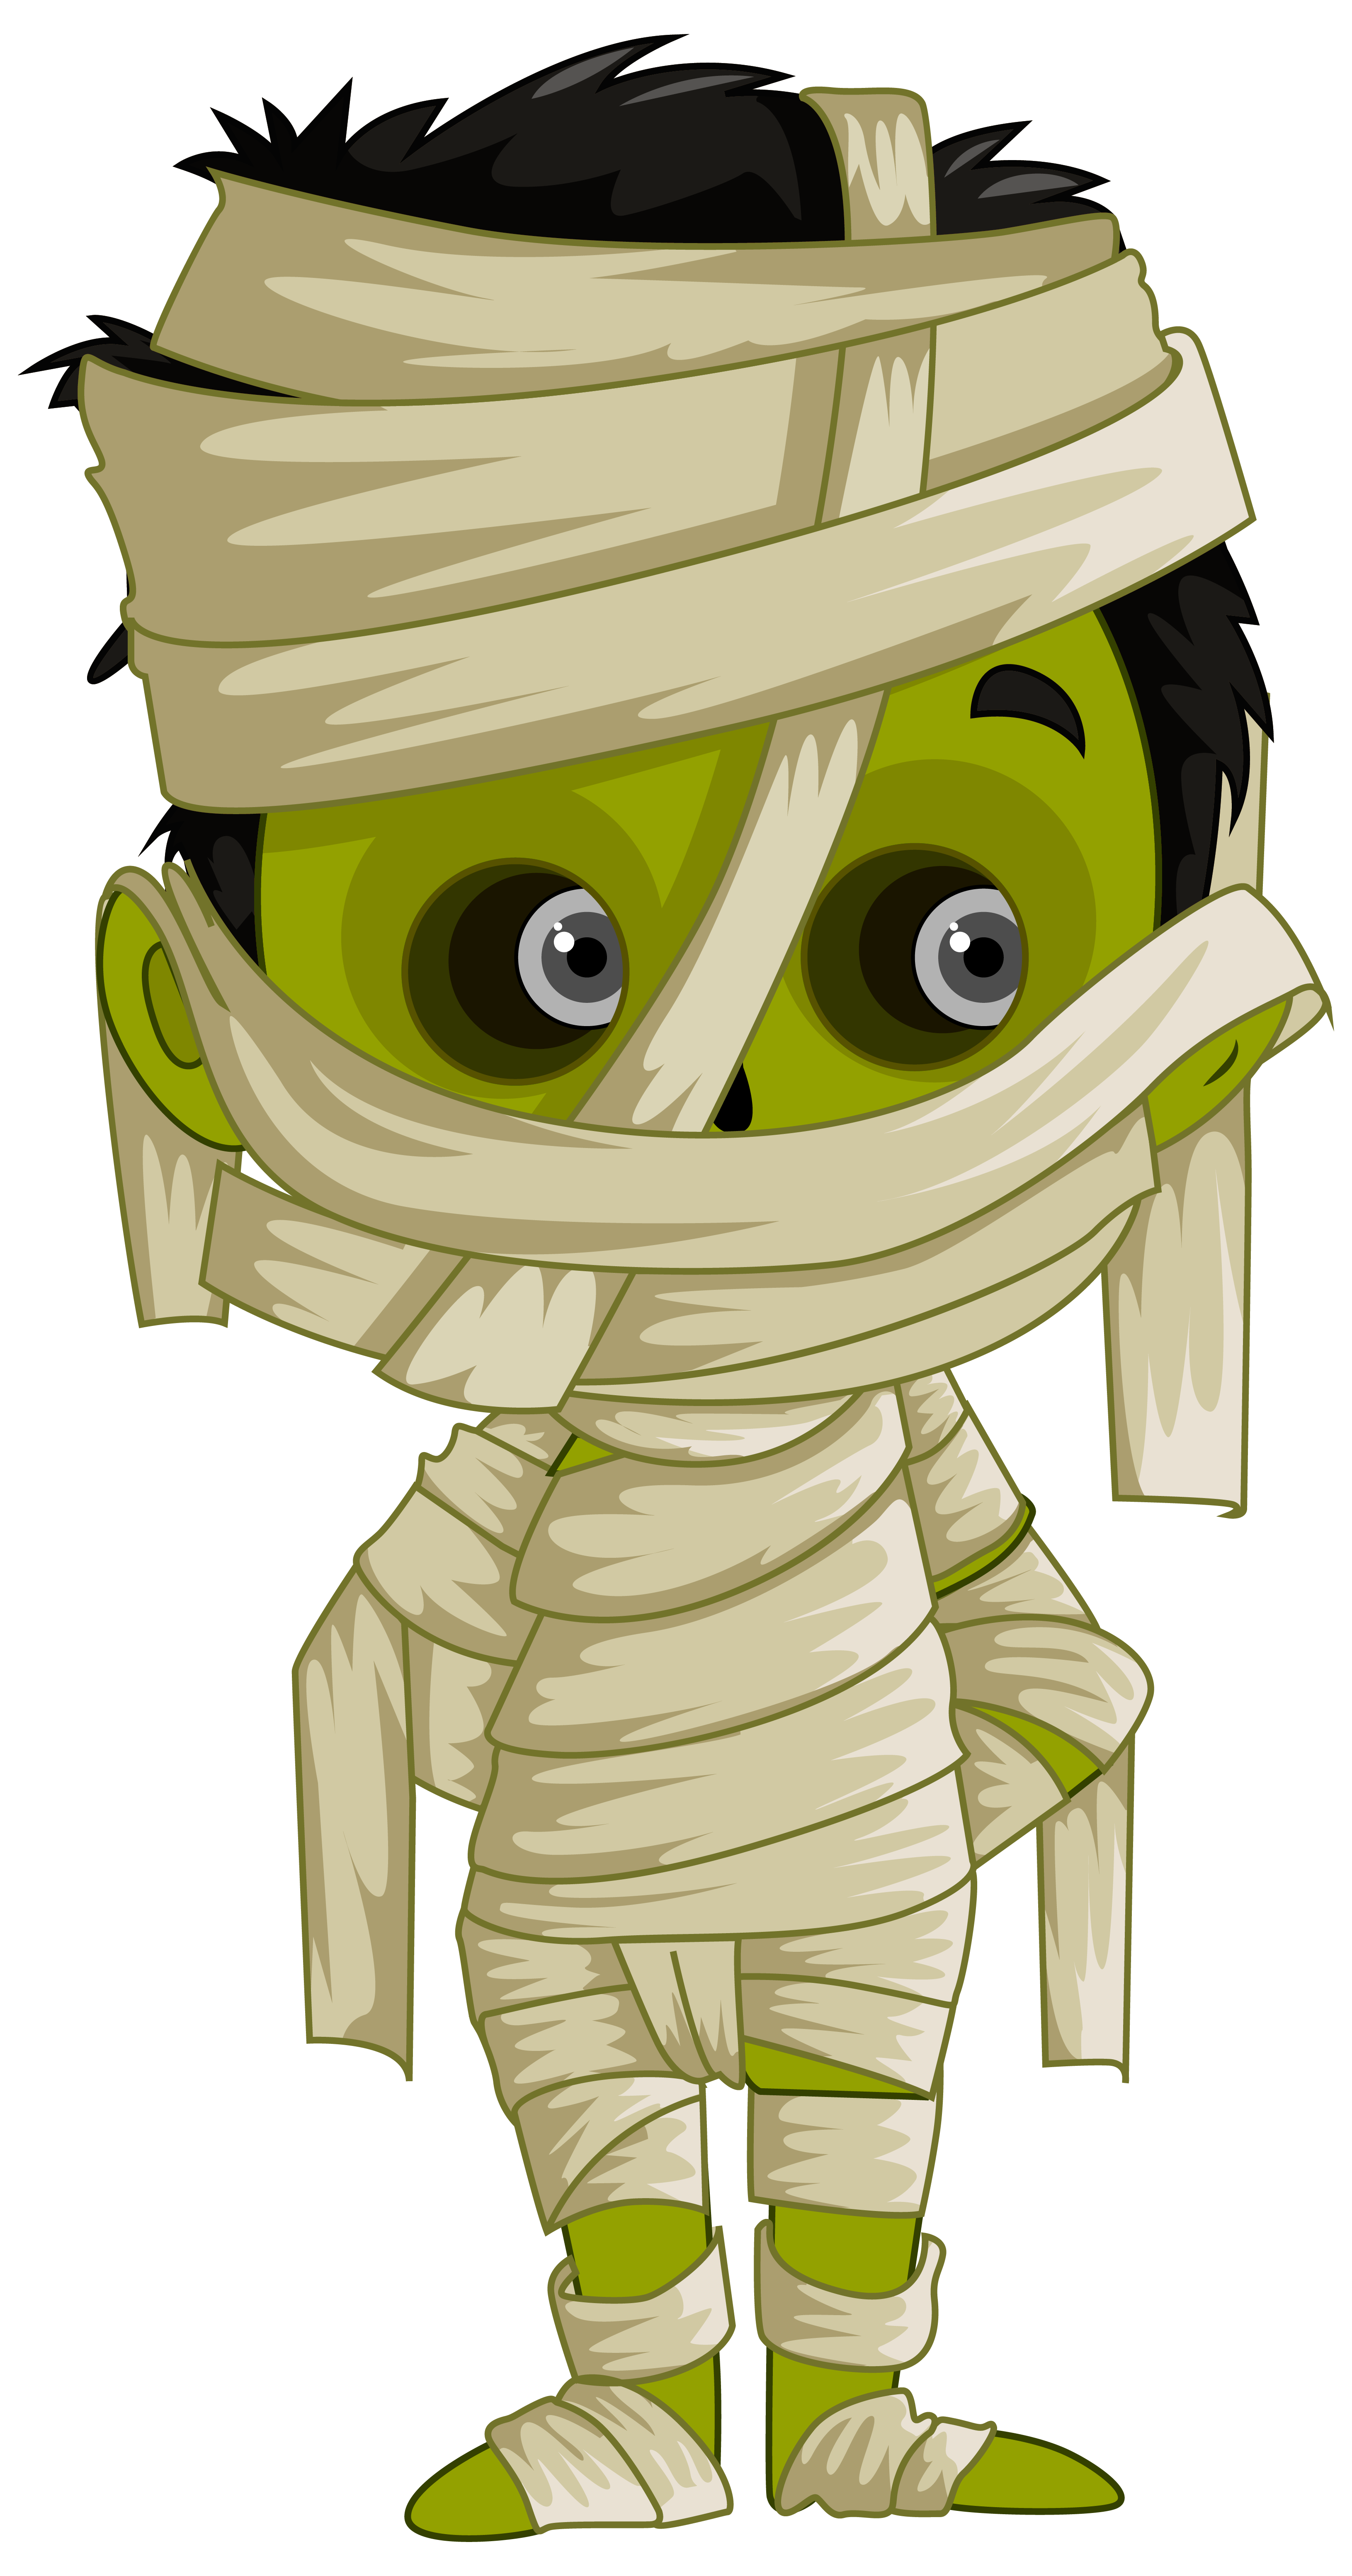 svg download Png image gallery yopriceville. Mummy clipart.